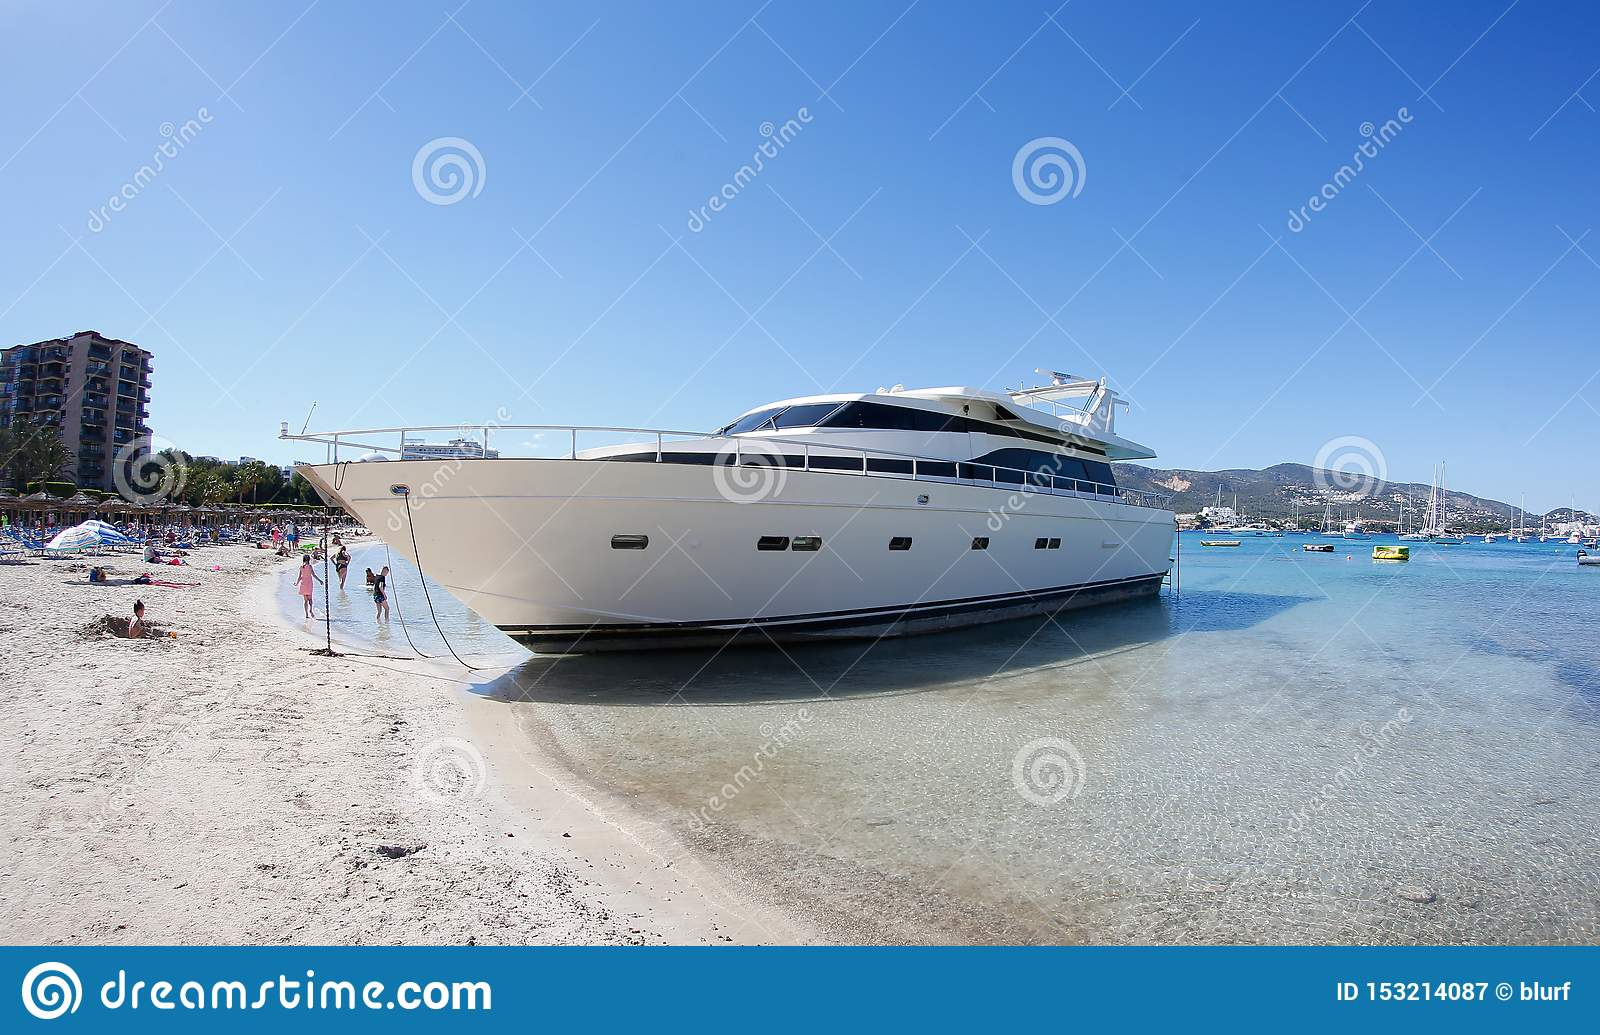 https www dreamstime com luxury yacht wrecked sand son matias beach palmanova last march strong storms caused wreckage then image153214087